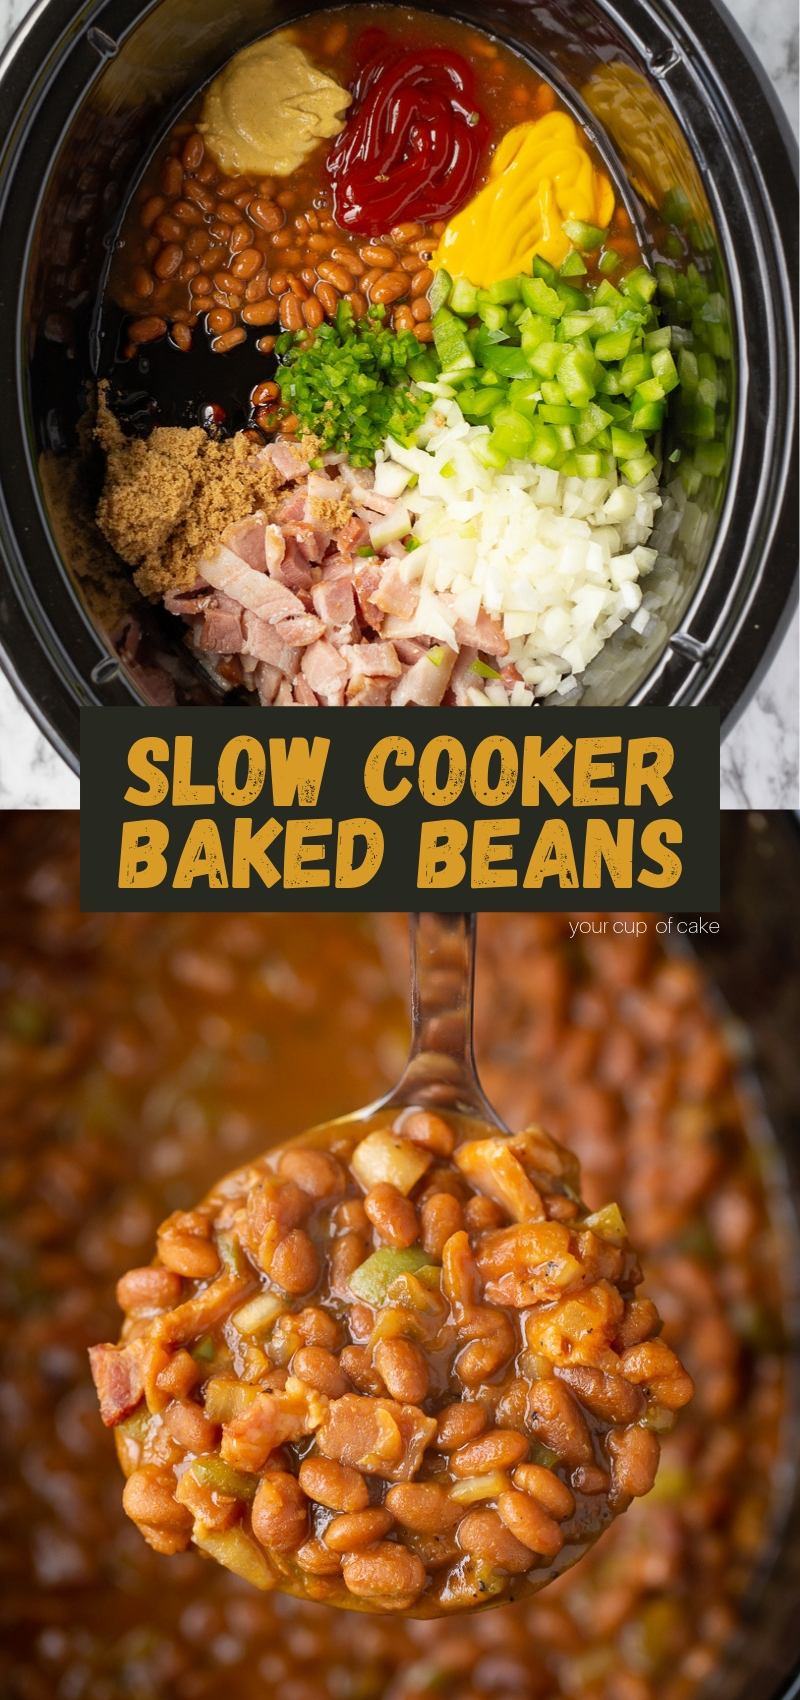 This recipe is AMAZING!! Slow Cooker BBQ Baked Beans